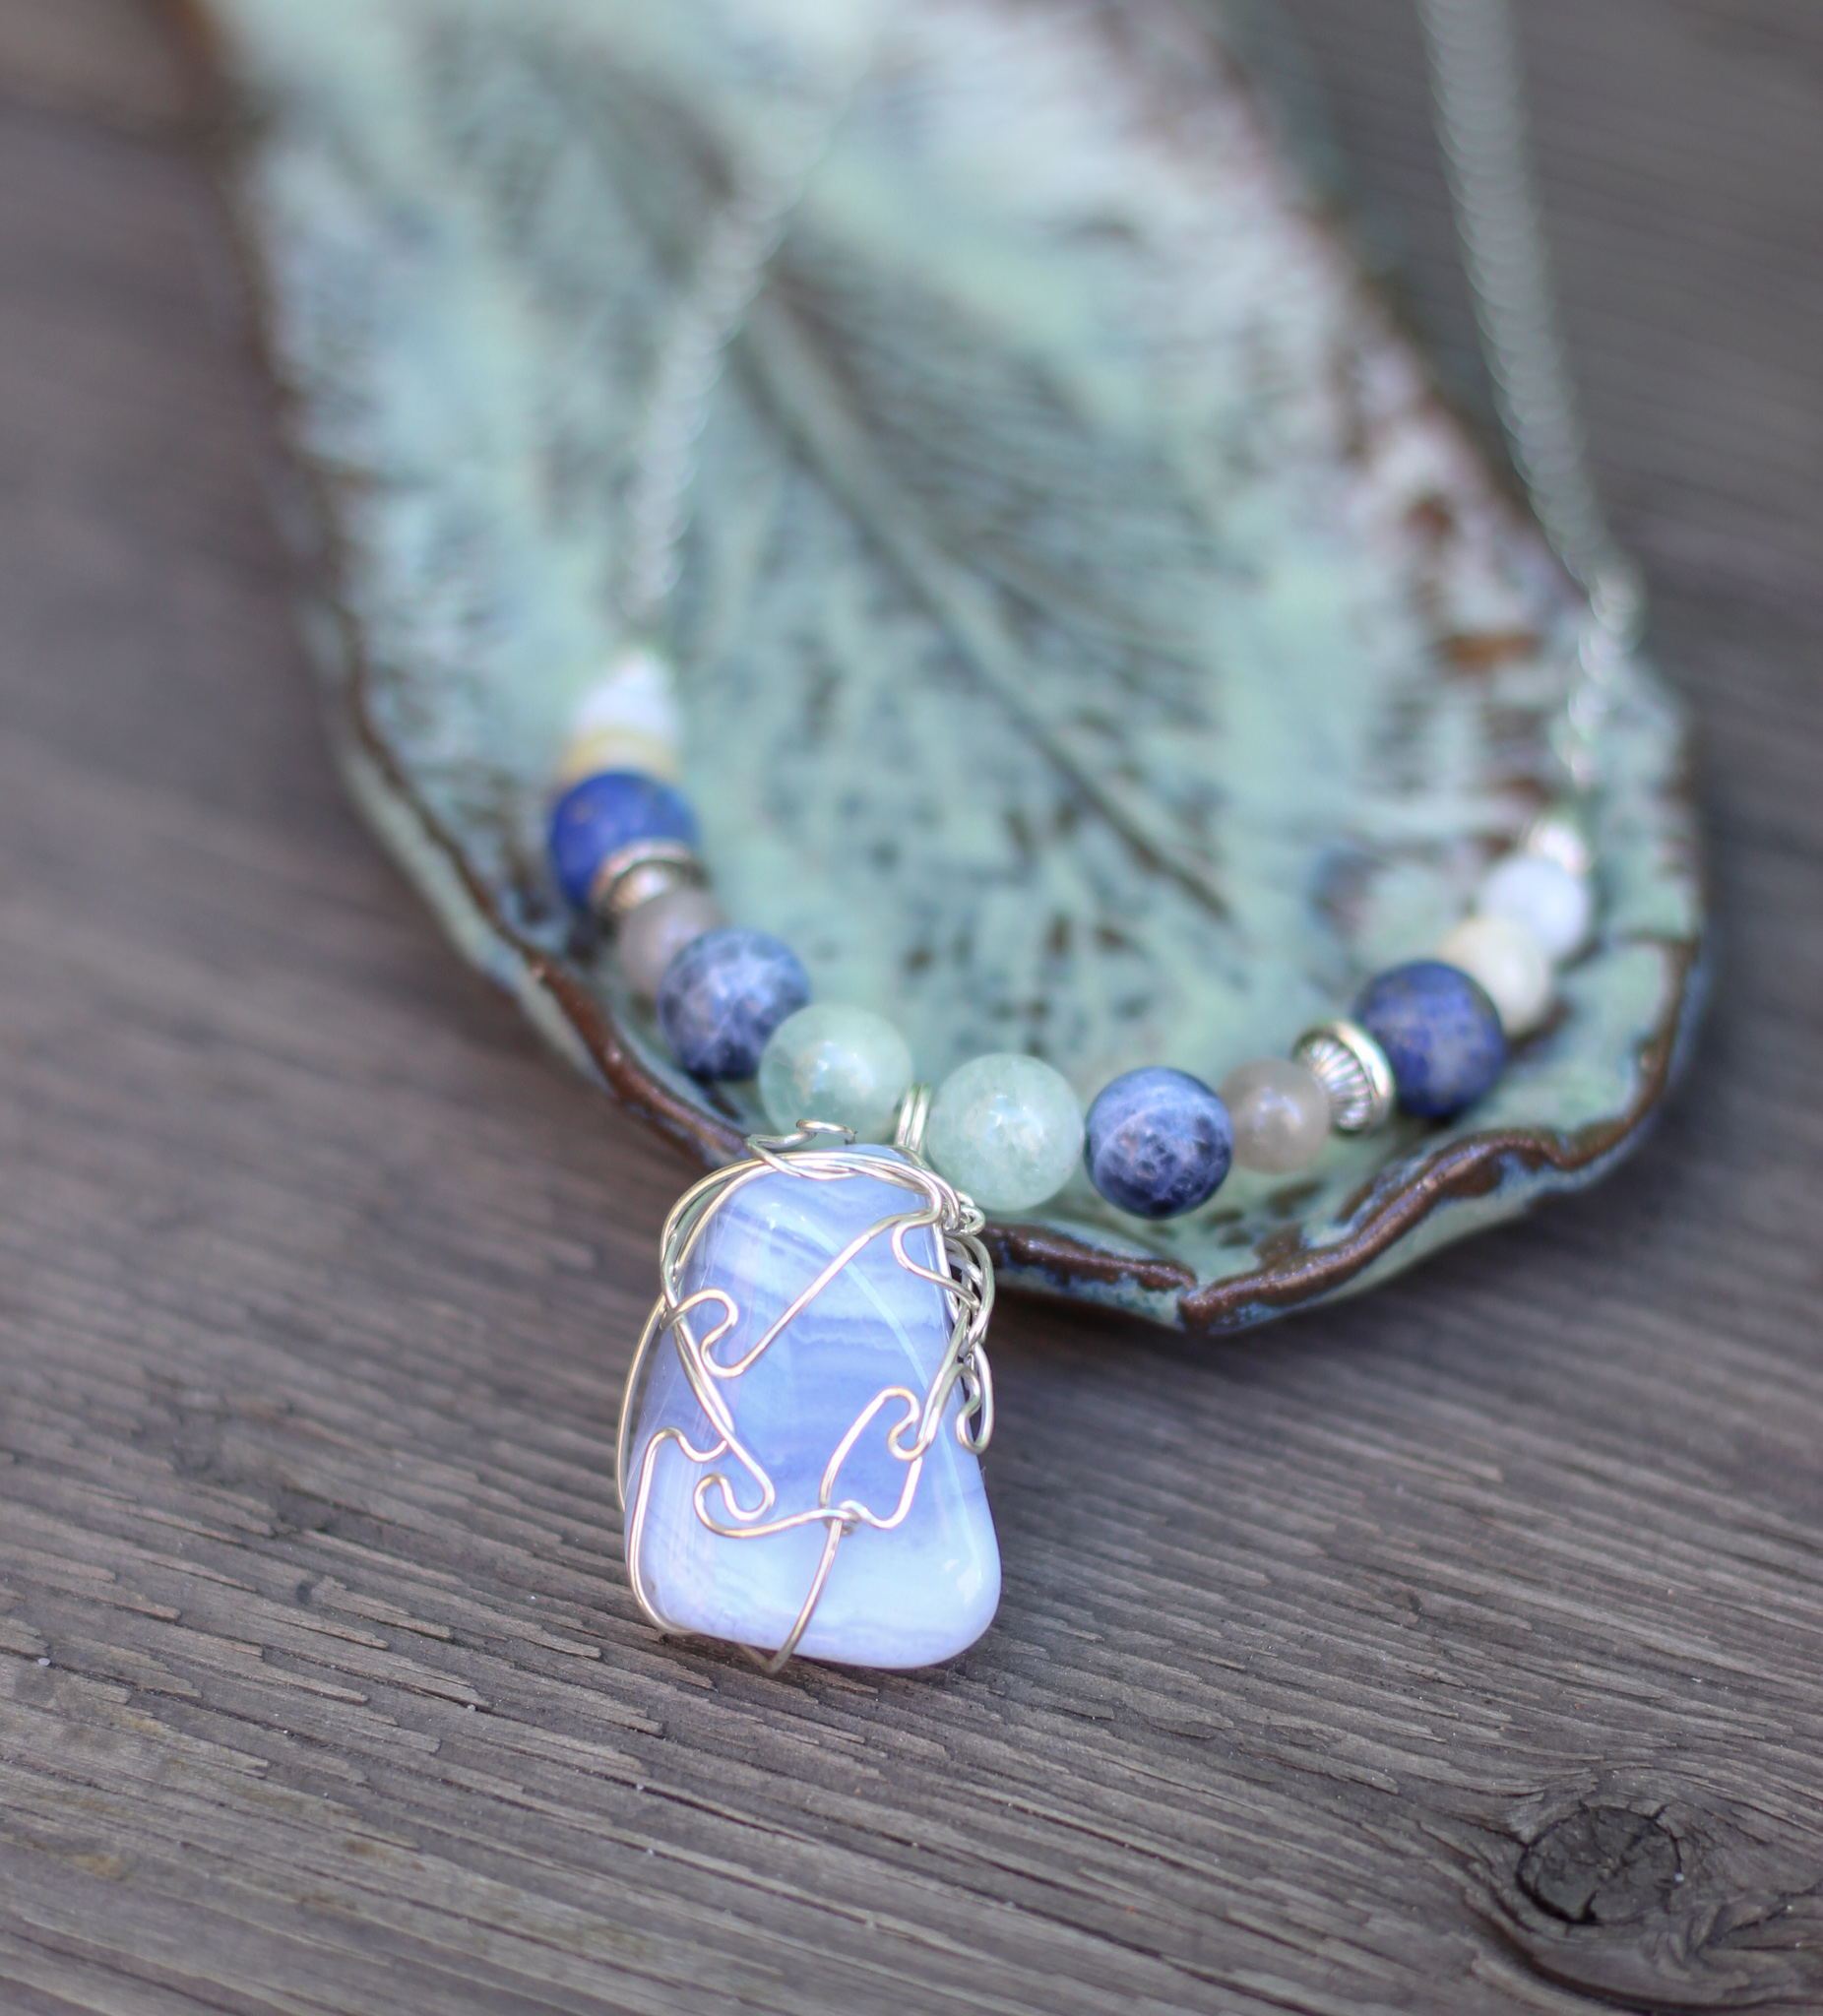 Streams of Peace Necklace - Blue Lace Agate